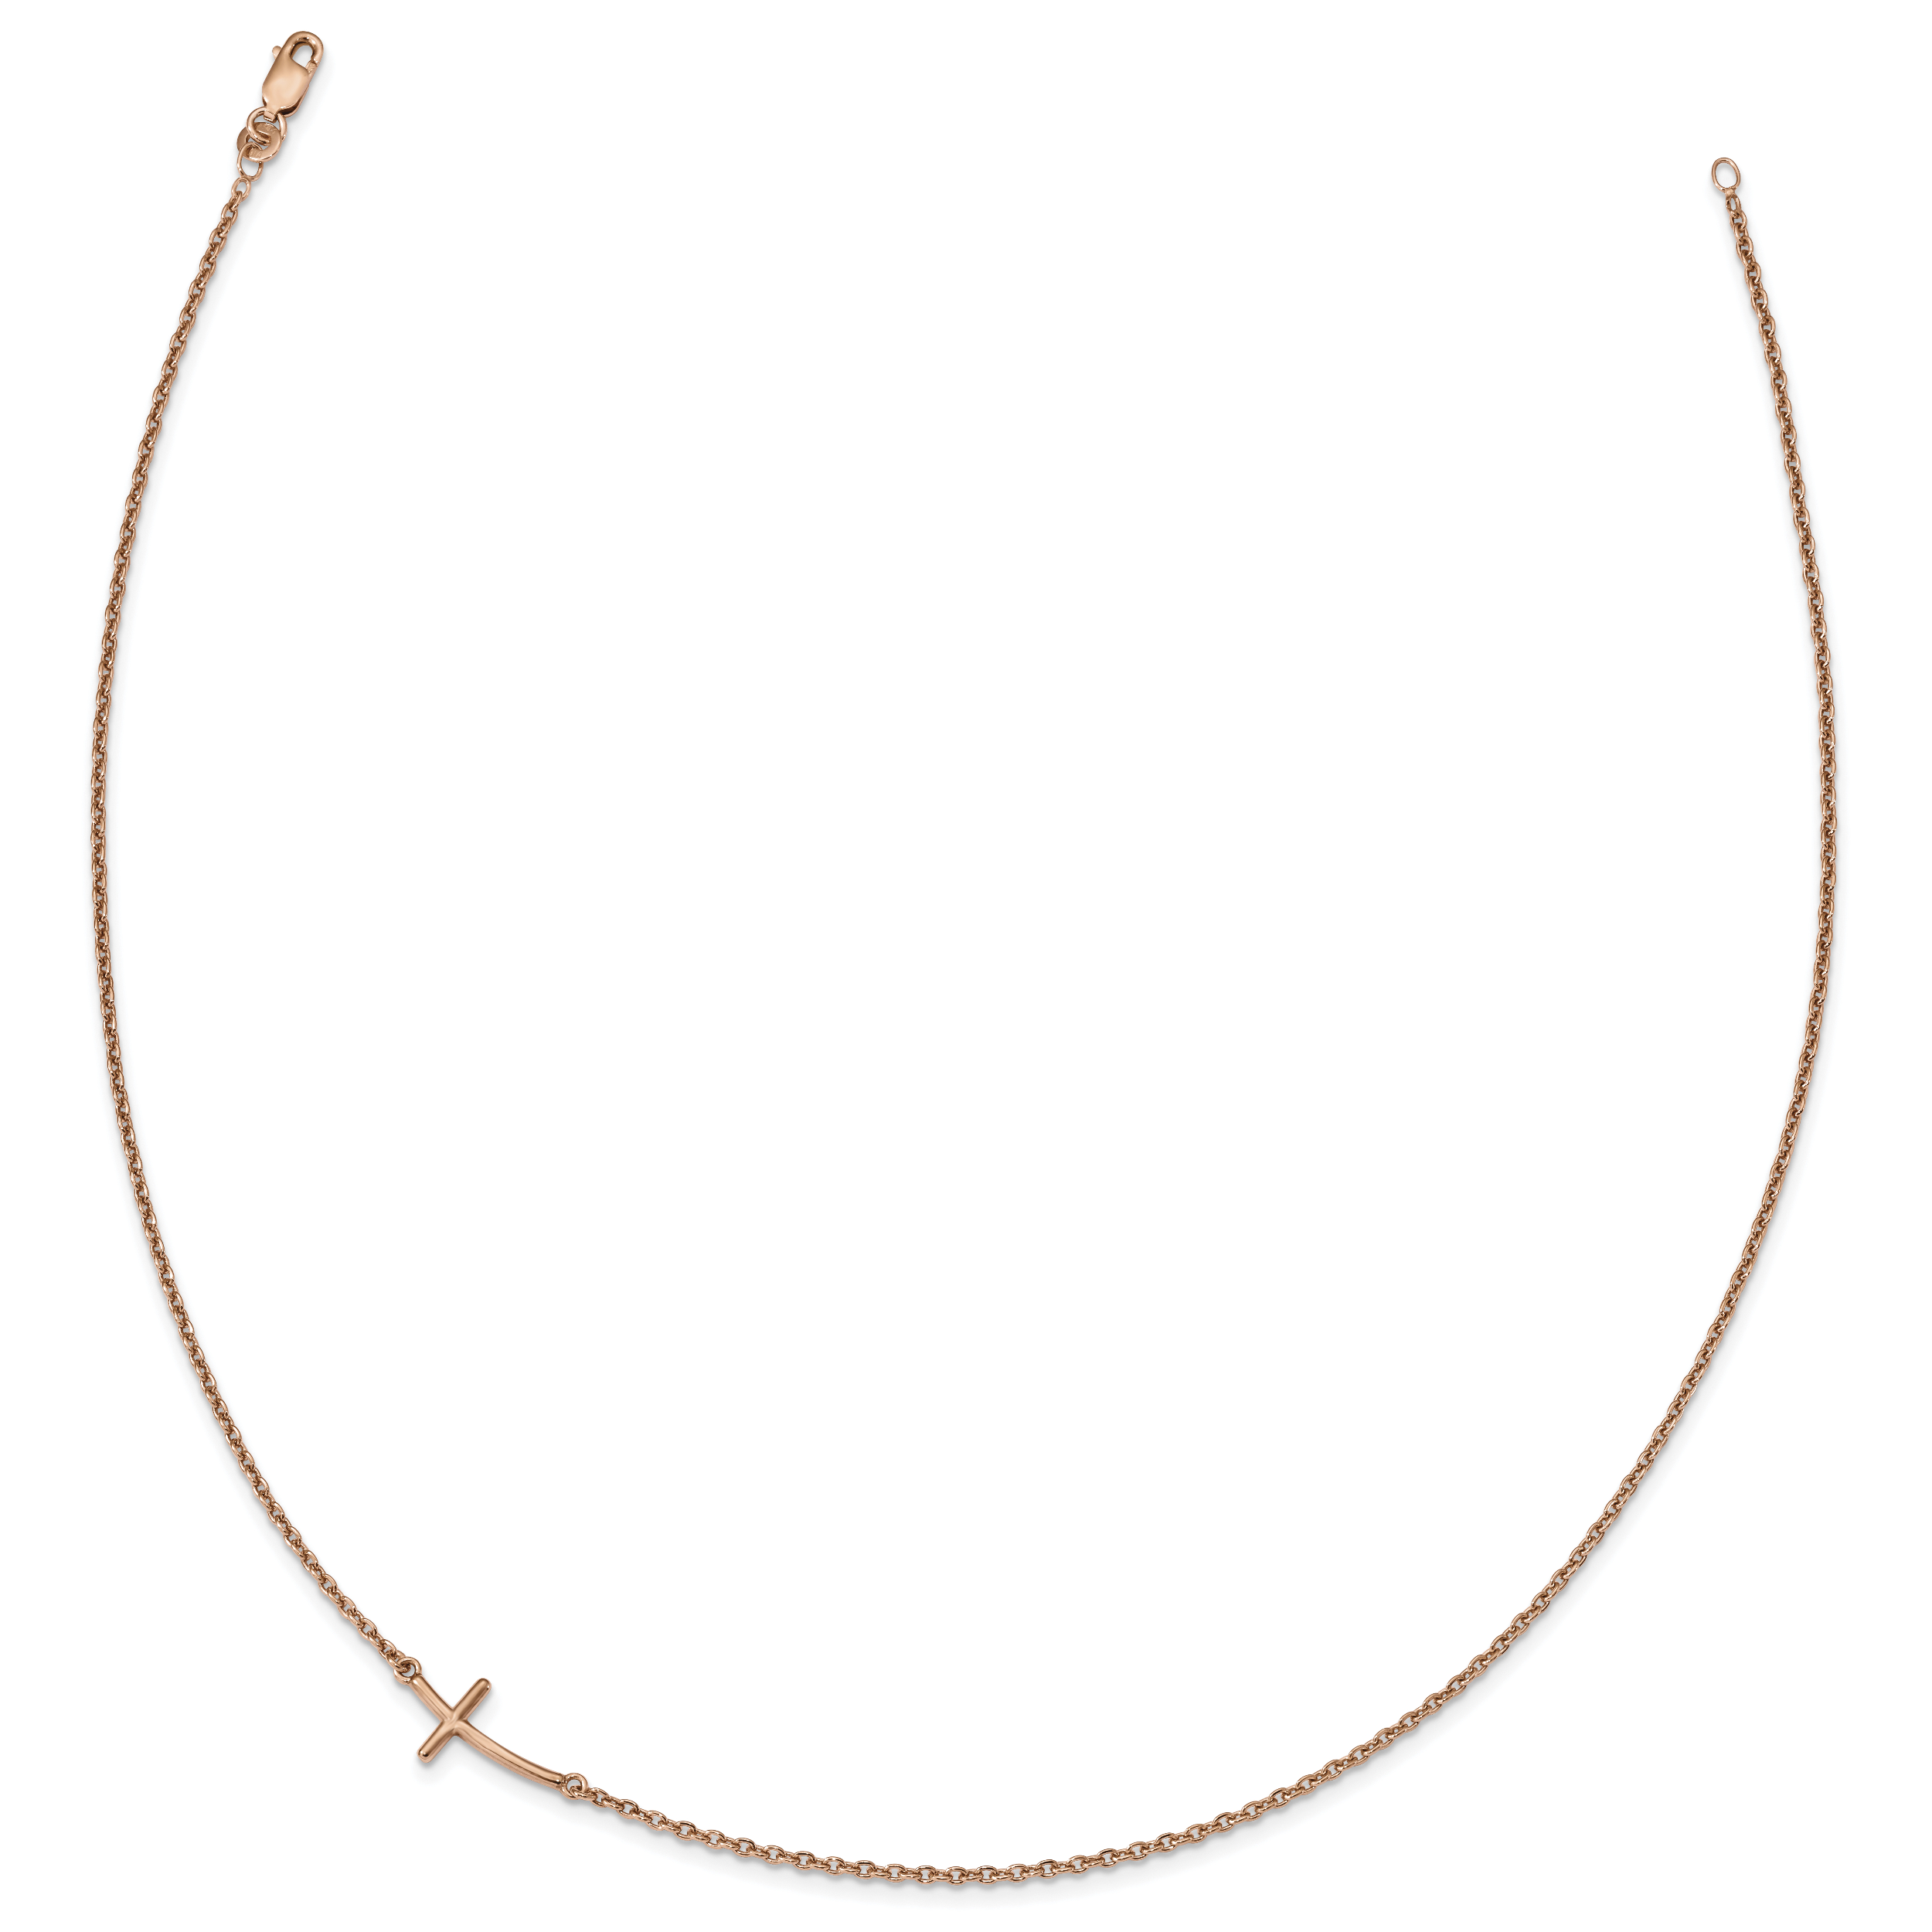 Sideways Curved Cross Necklace: Sterling Silver 18in Rose Gold-plated Small Sideways